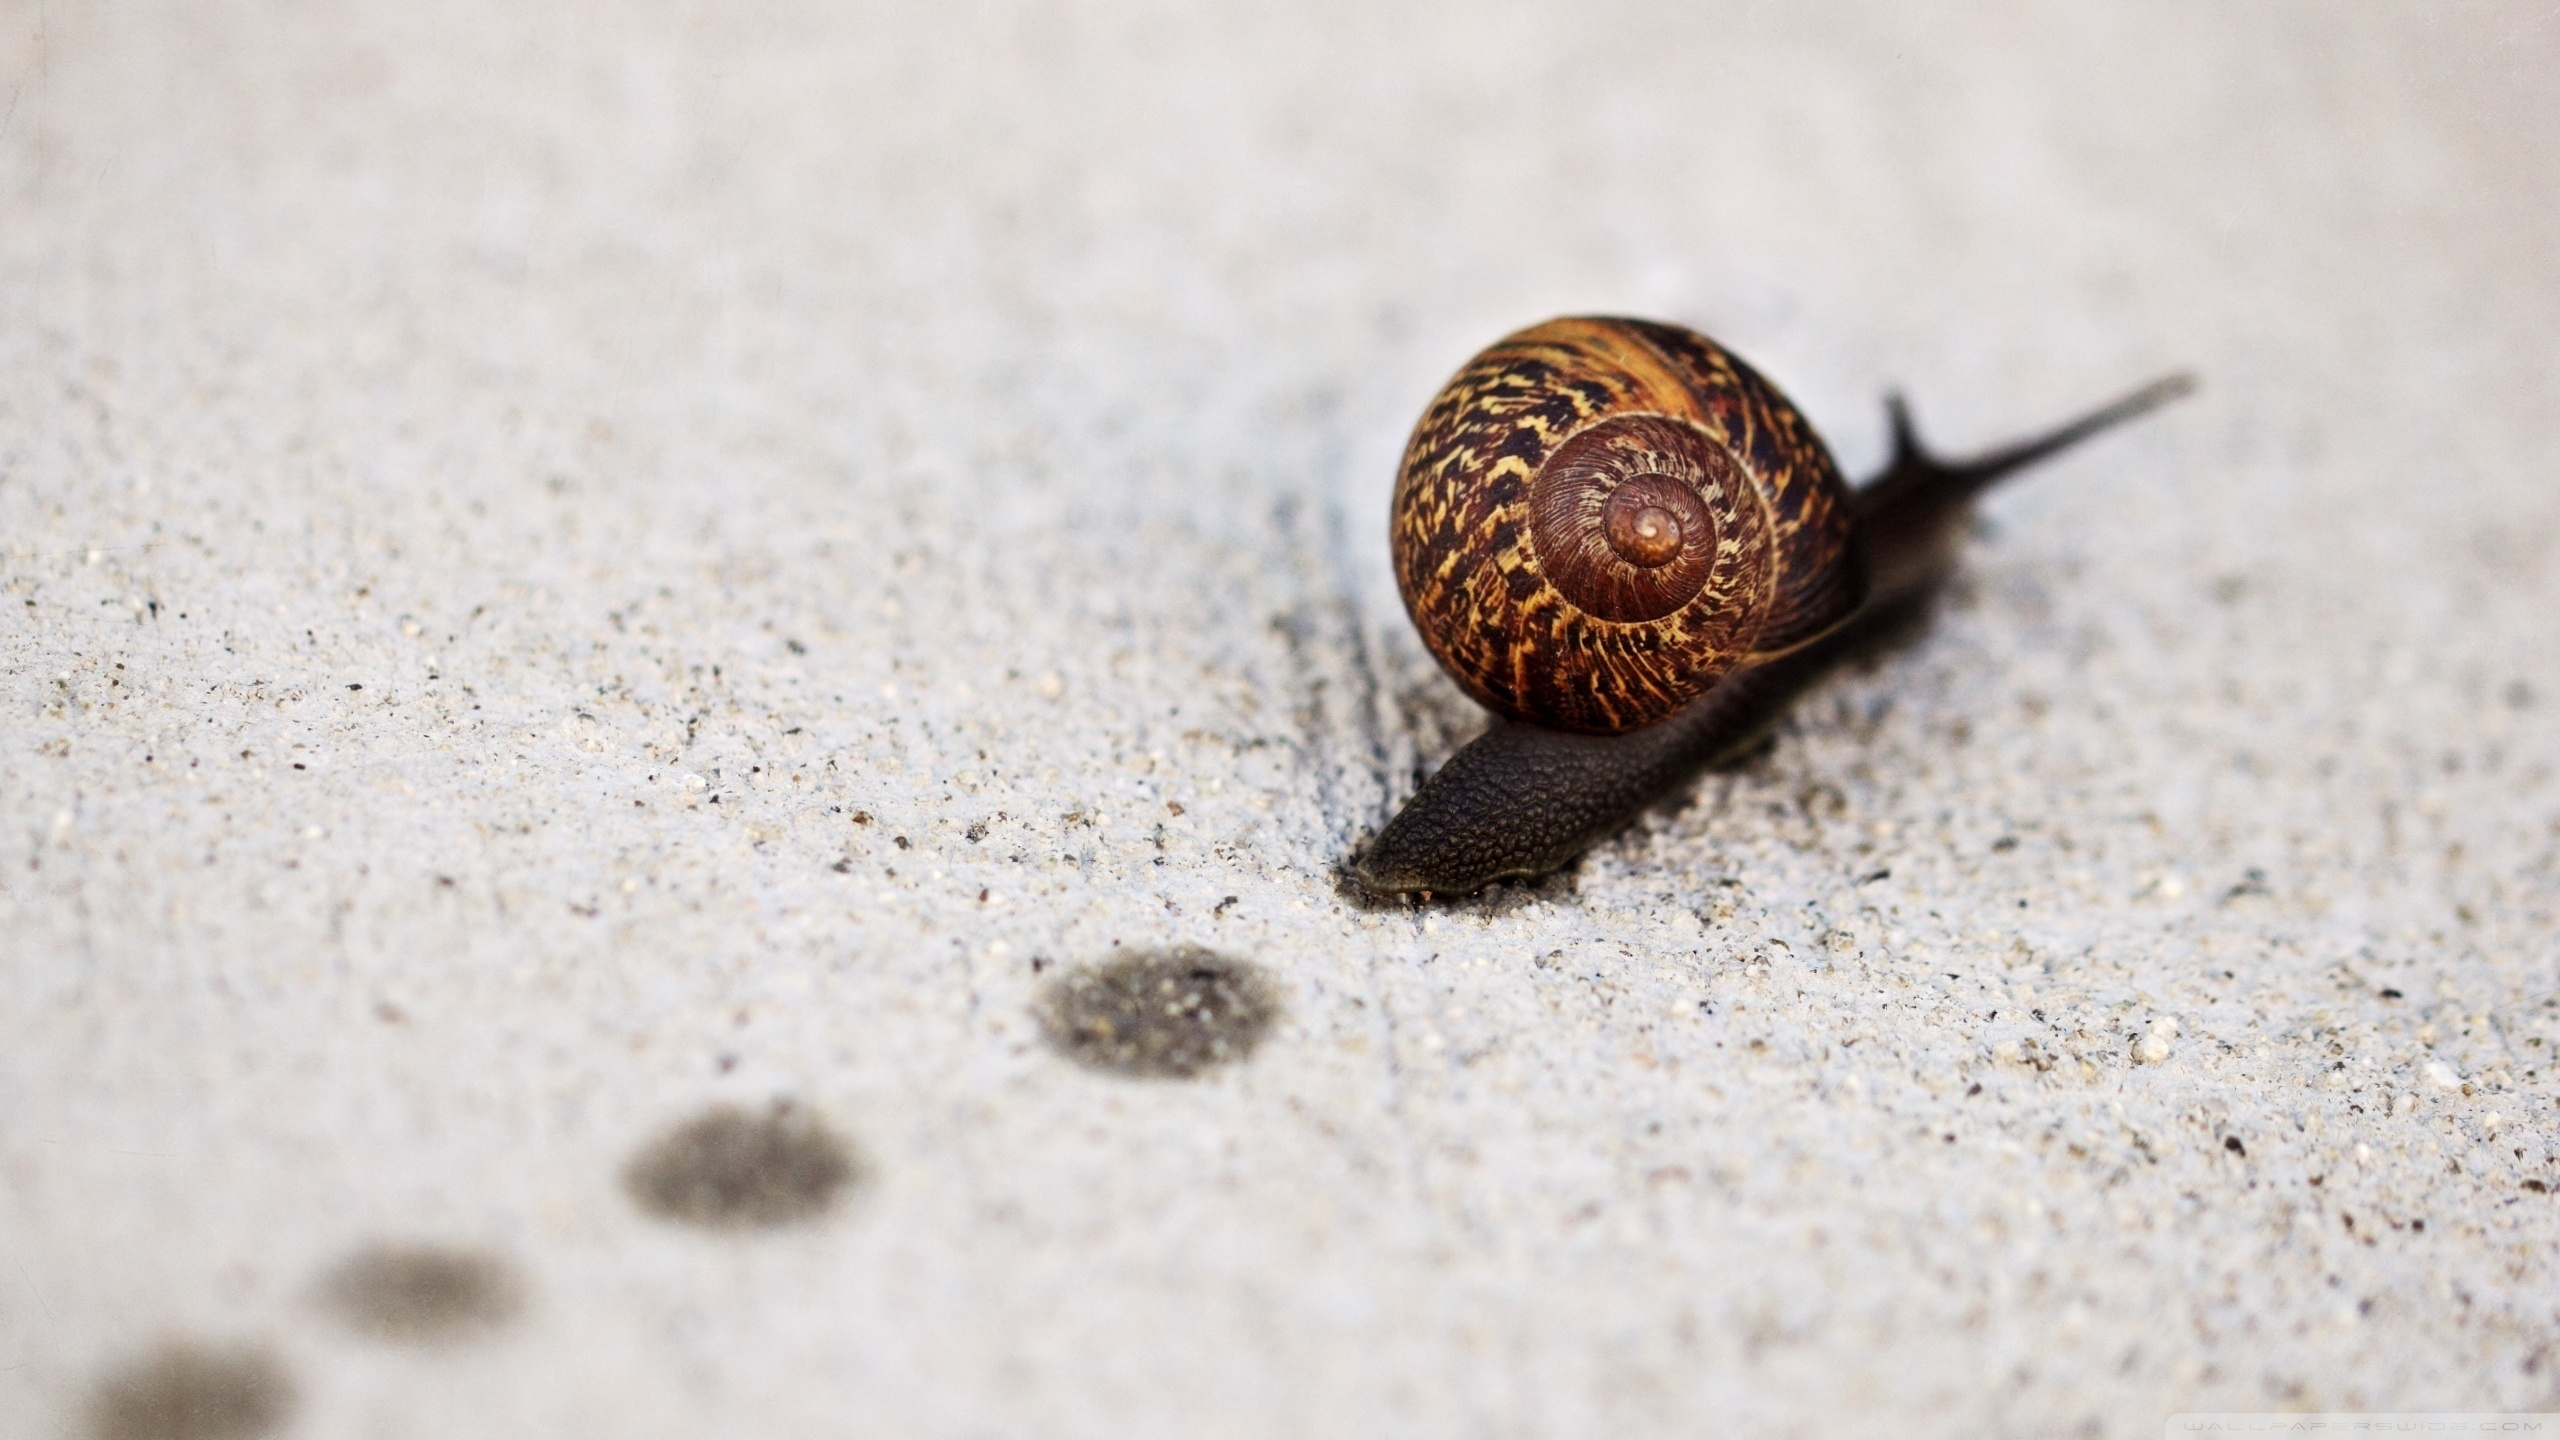 Snail Full HD Wallpaper And Background Image